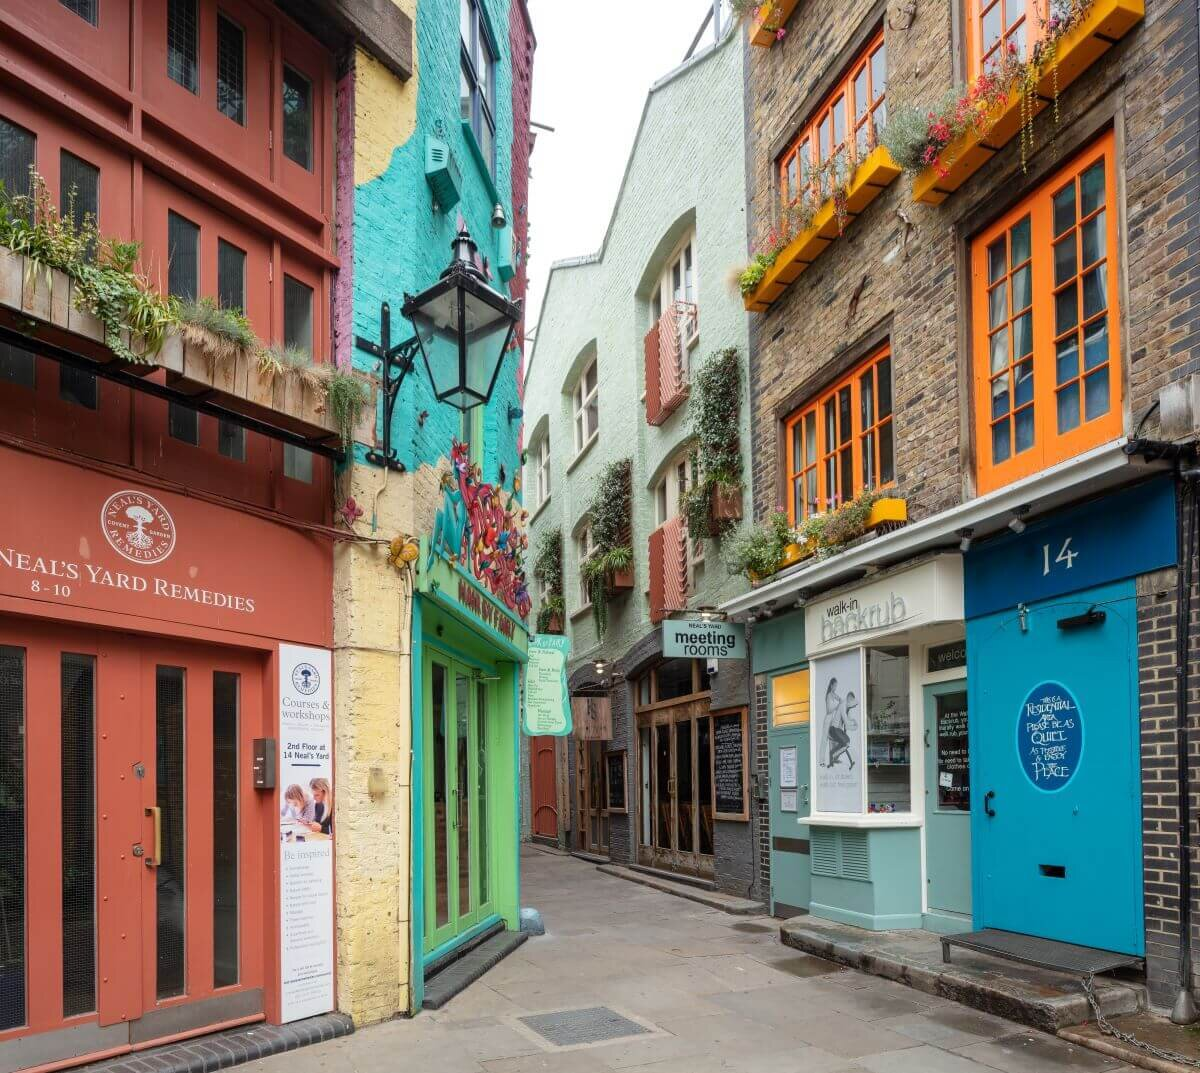 This London shopping street is a narrow alley with colorful storefronts and doors in brick buildings.